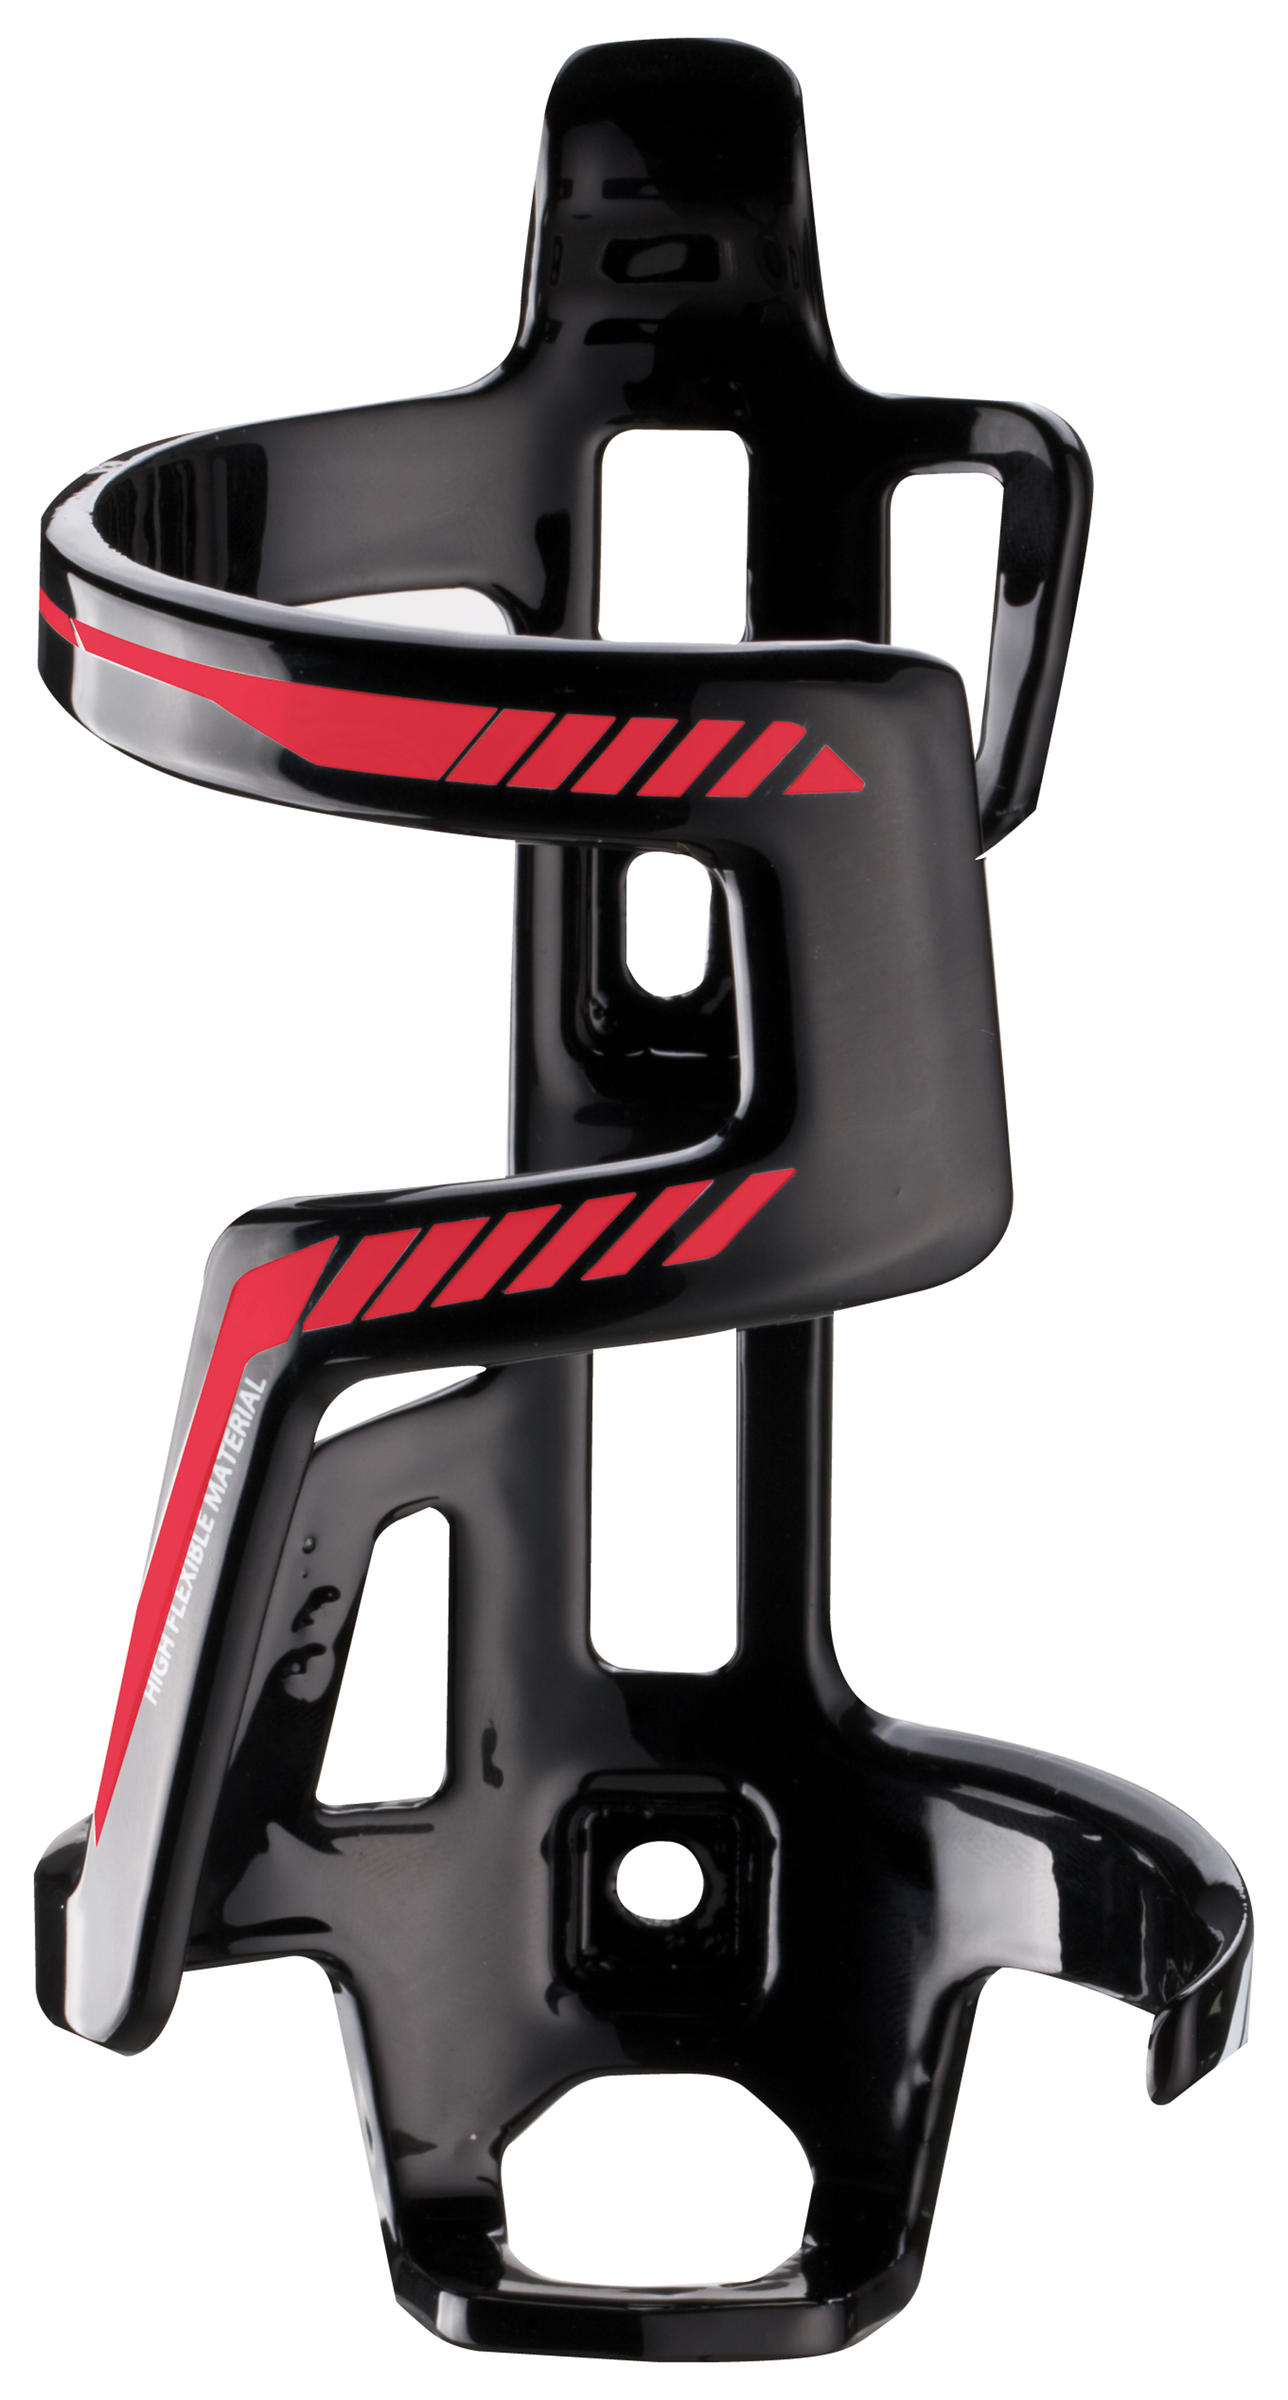 Giant Proway Side Pull Bottle Cage Fitchburg Cycles